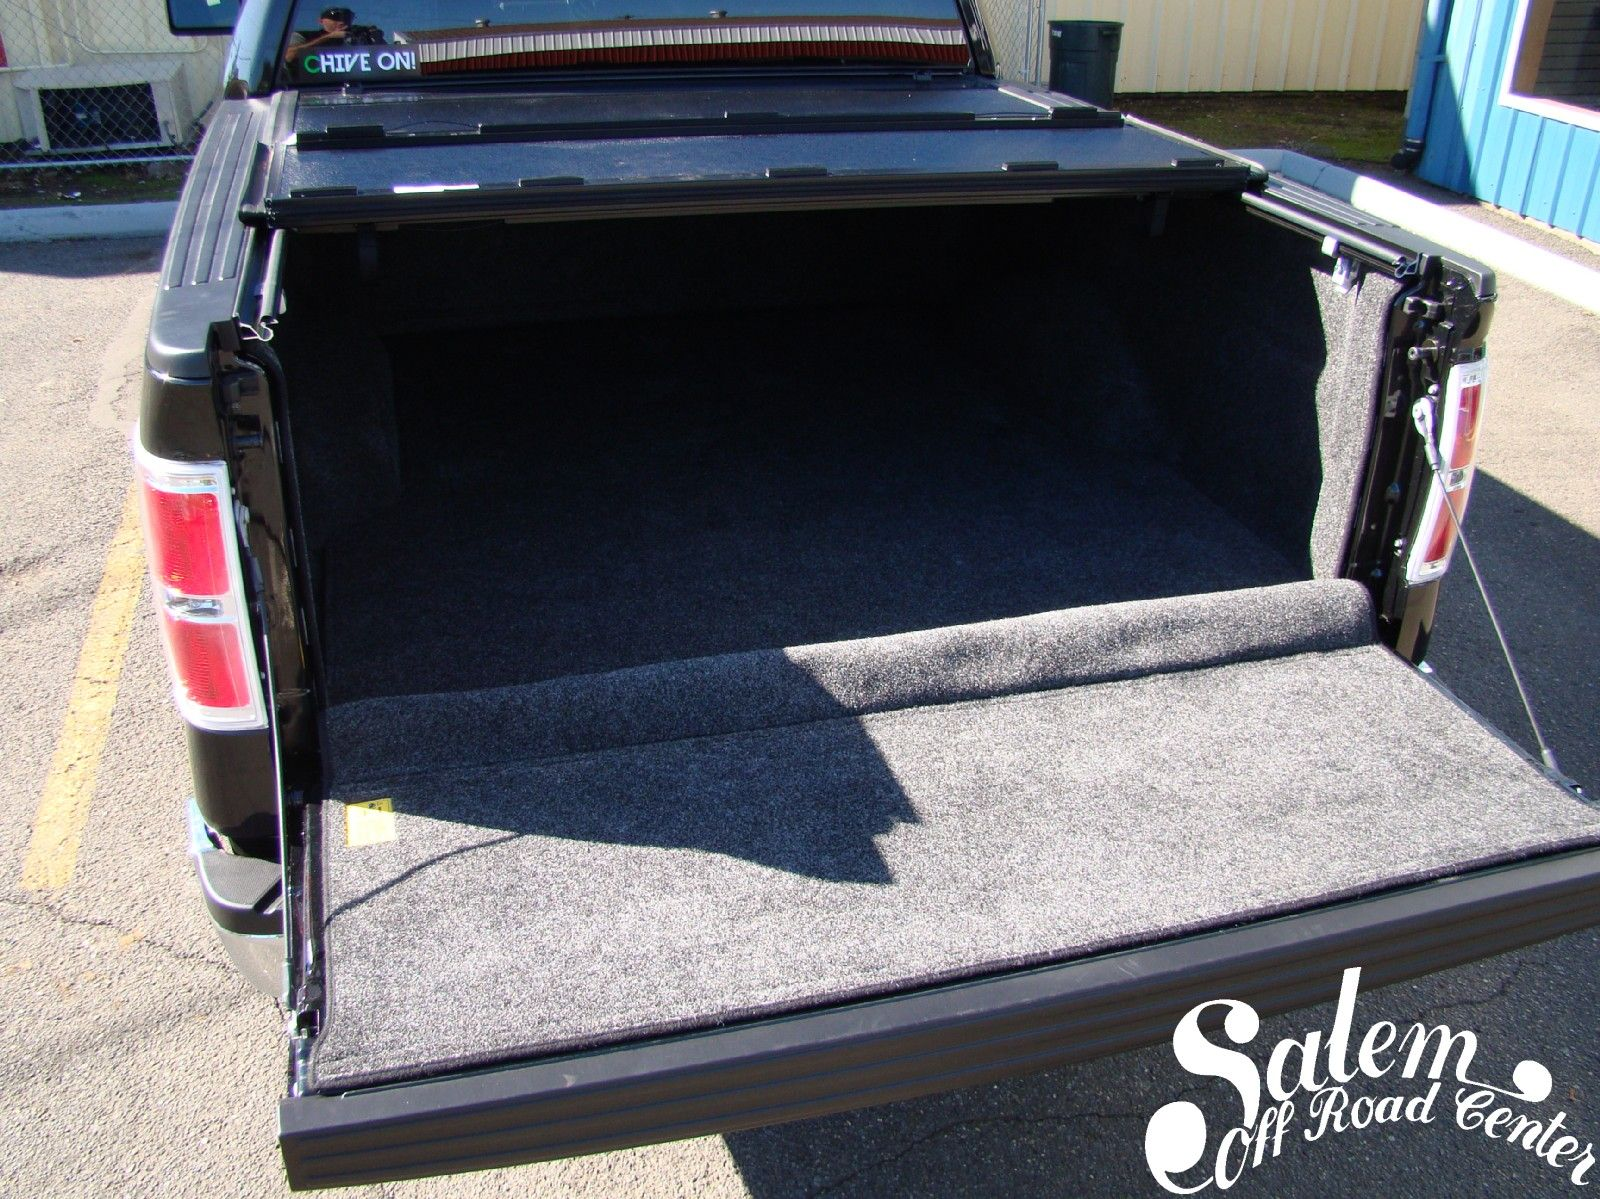 A 2013 Ford F150 with a Bed Rug bed liner and a